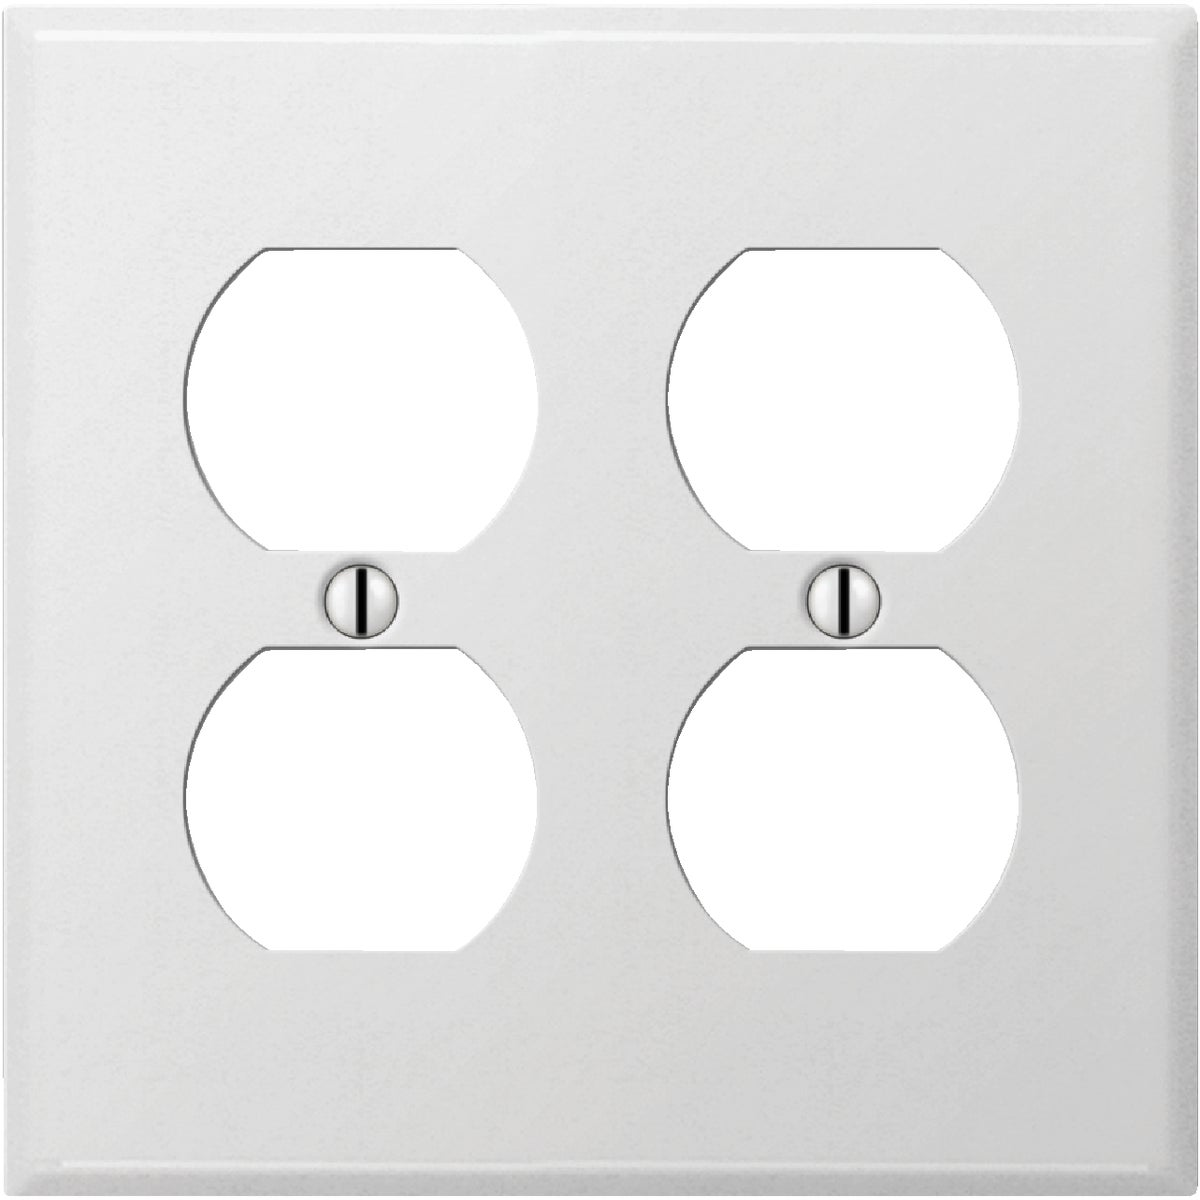 WHT DBL OUTLT WALL PLATE - 8WS118 by Jackson Deerfield Mf